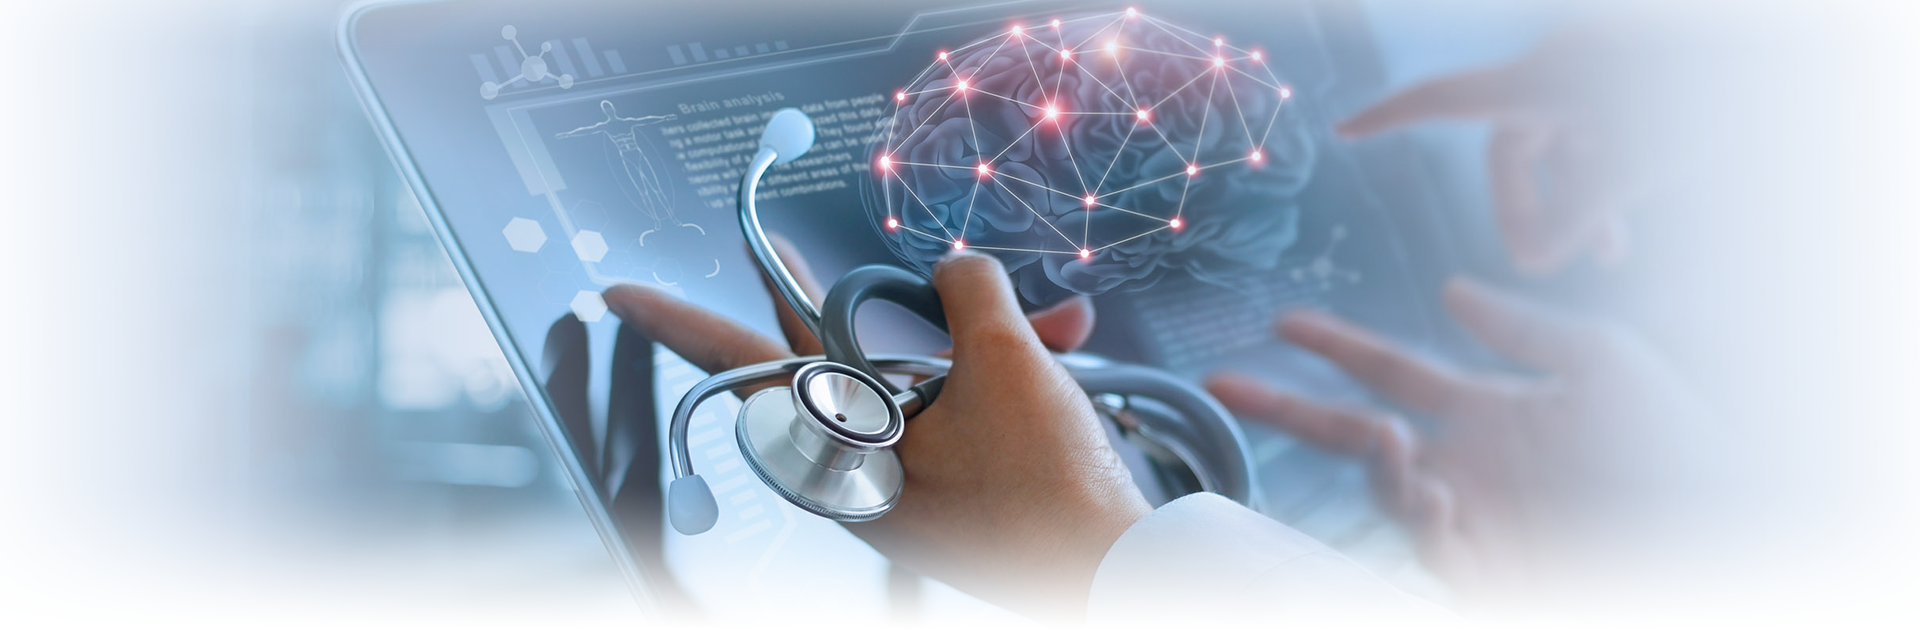 Hand holding stethoscope with brain on screen.